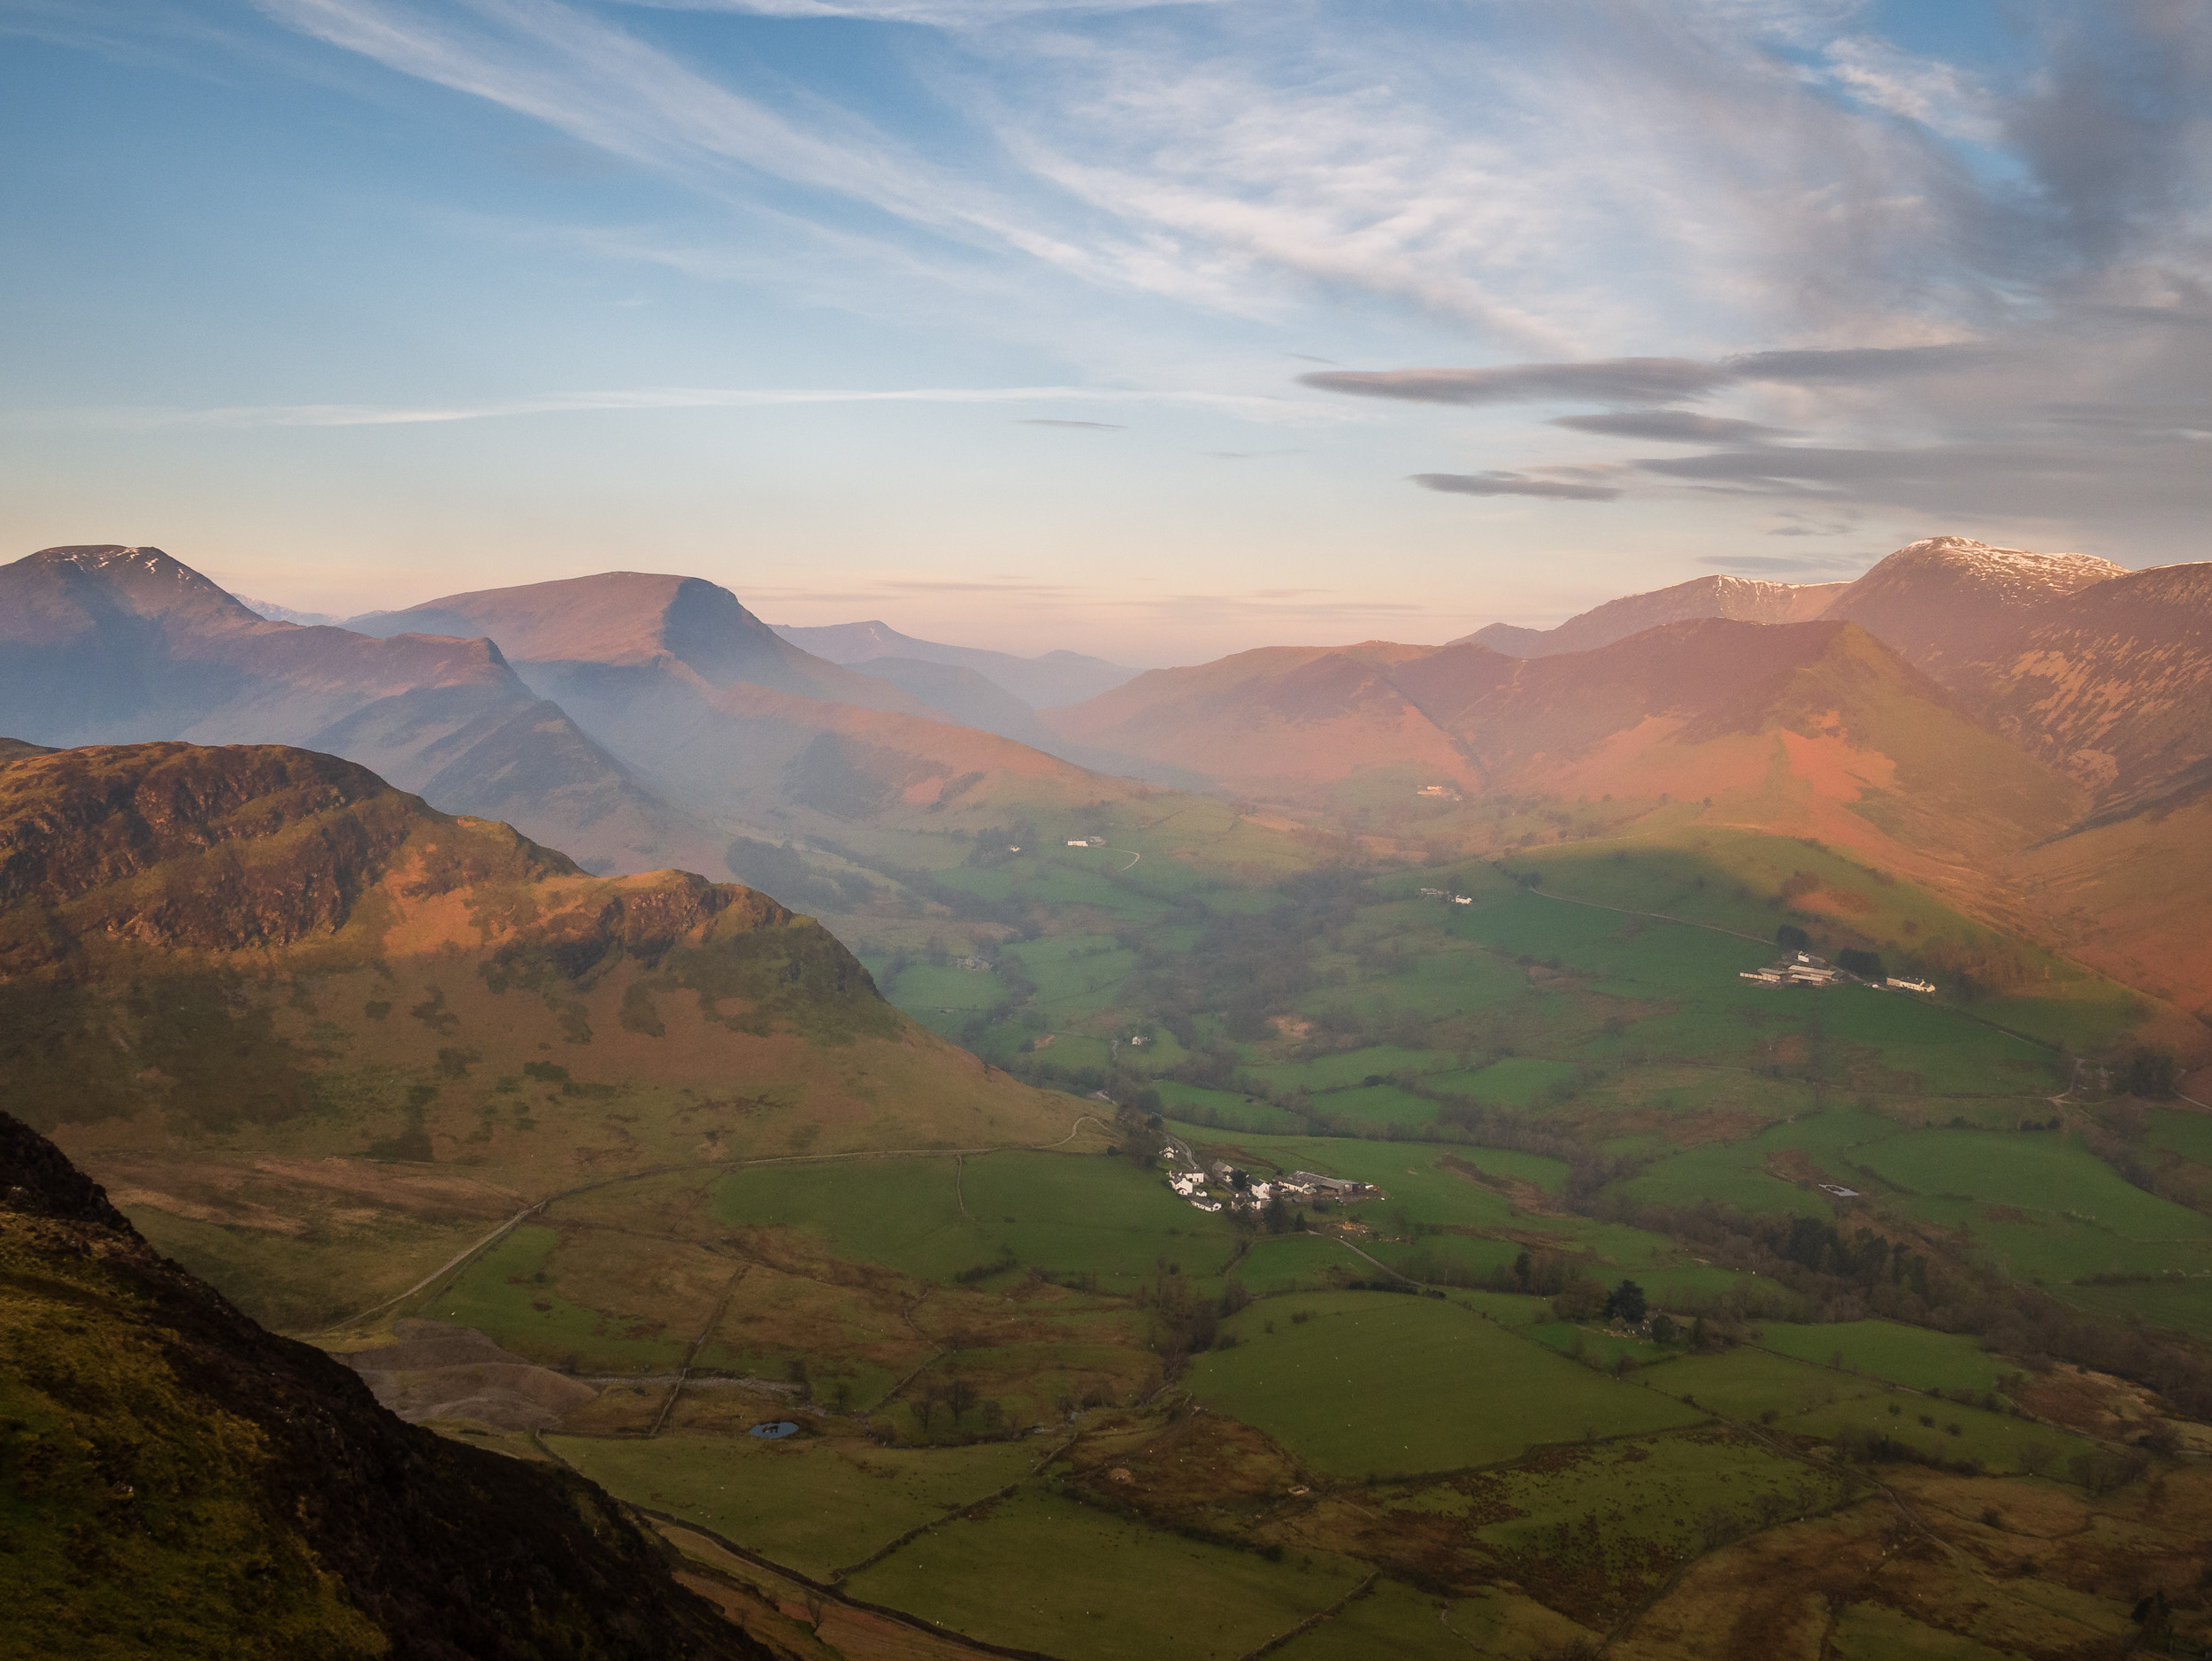 Dawn Crags from Cat Bells, Lake District  - Panasonic Lumix G80, Lumix 12-60 mm f/3.5-5.6 @ 12mm, f/11, 1/50th sec @ ISO 200.